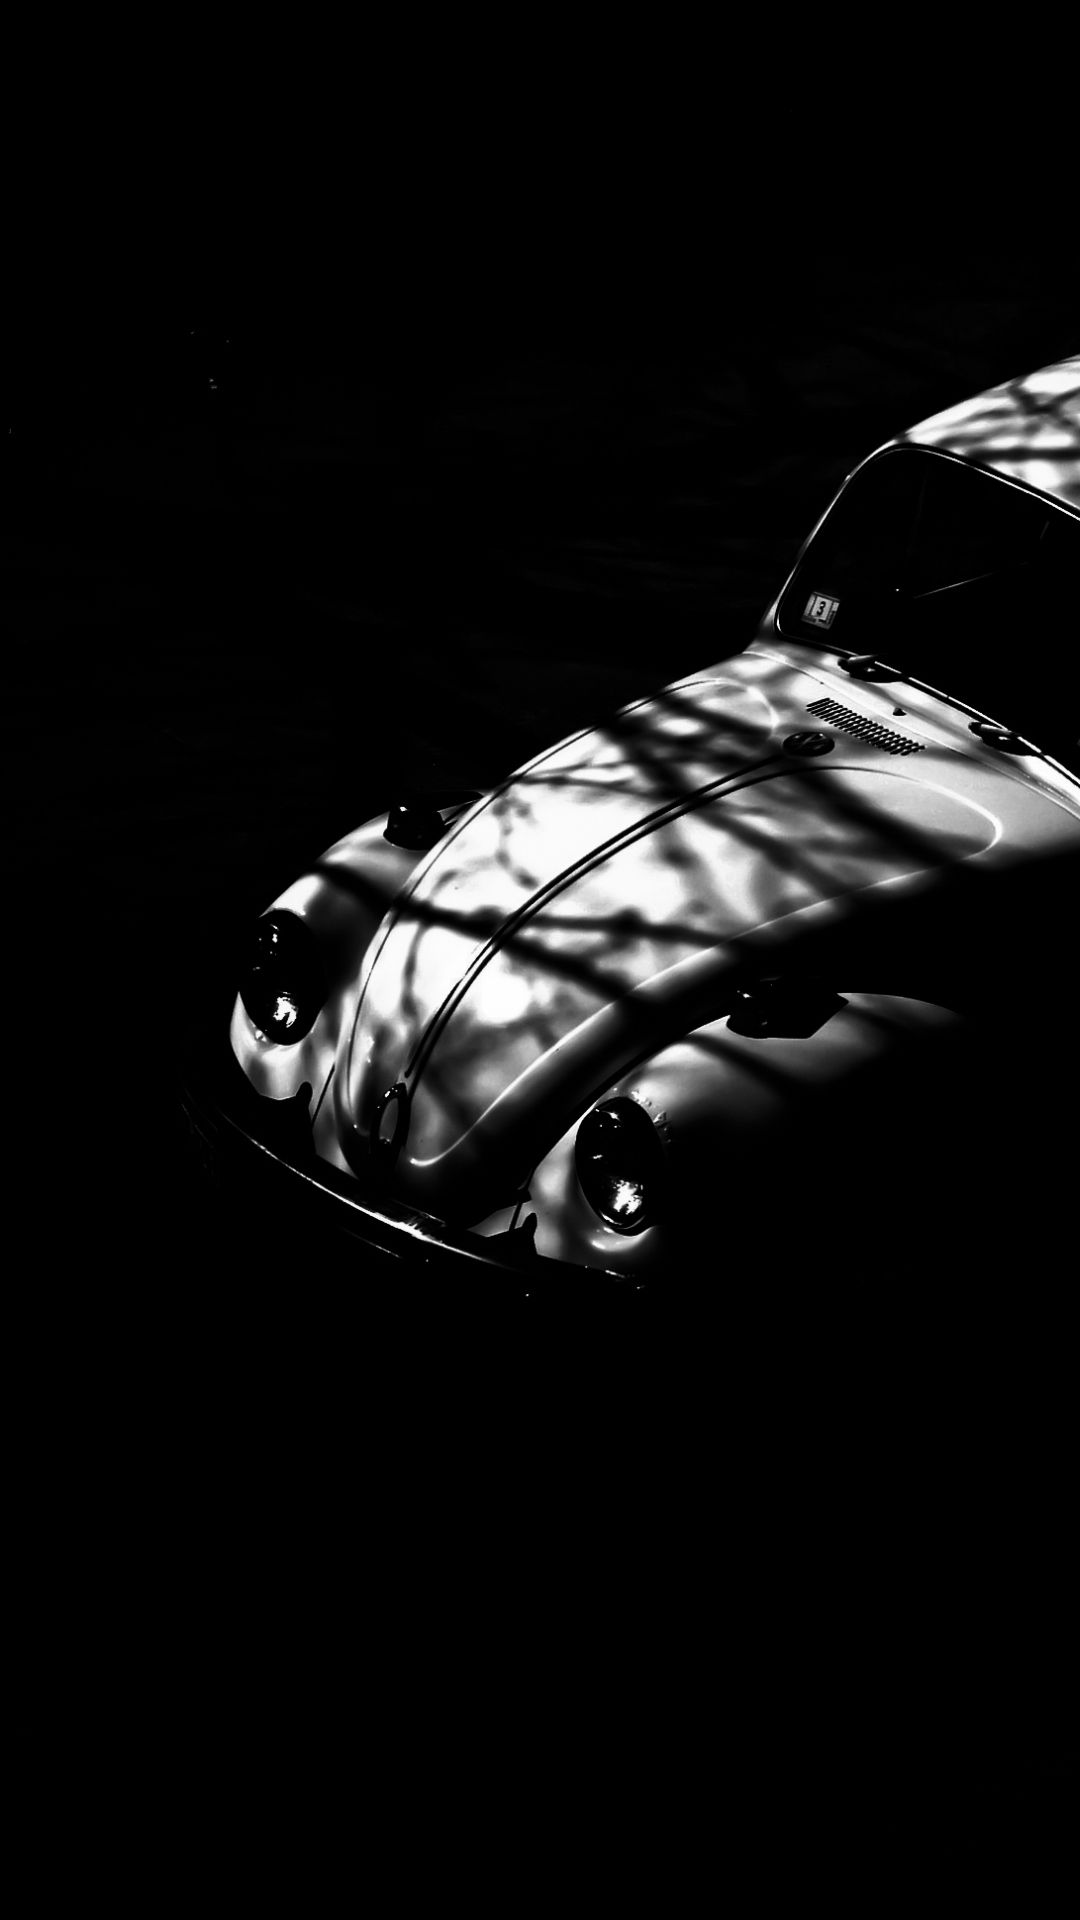 Iphone Black And White Car Wallpaper